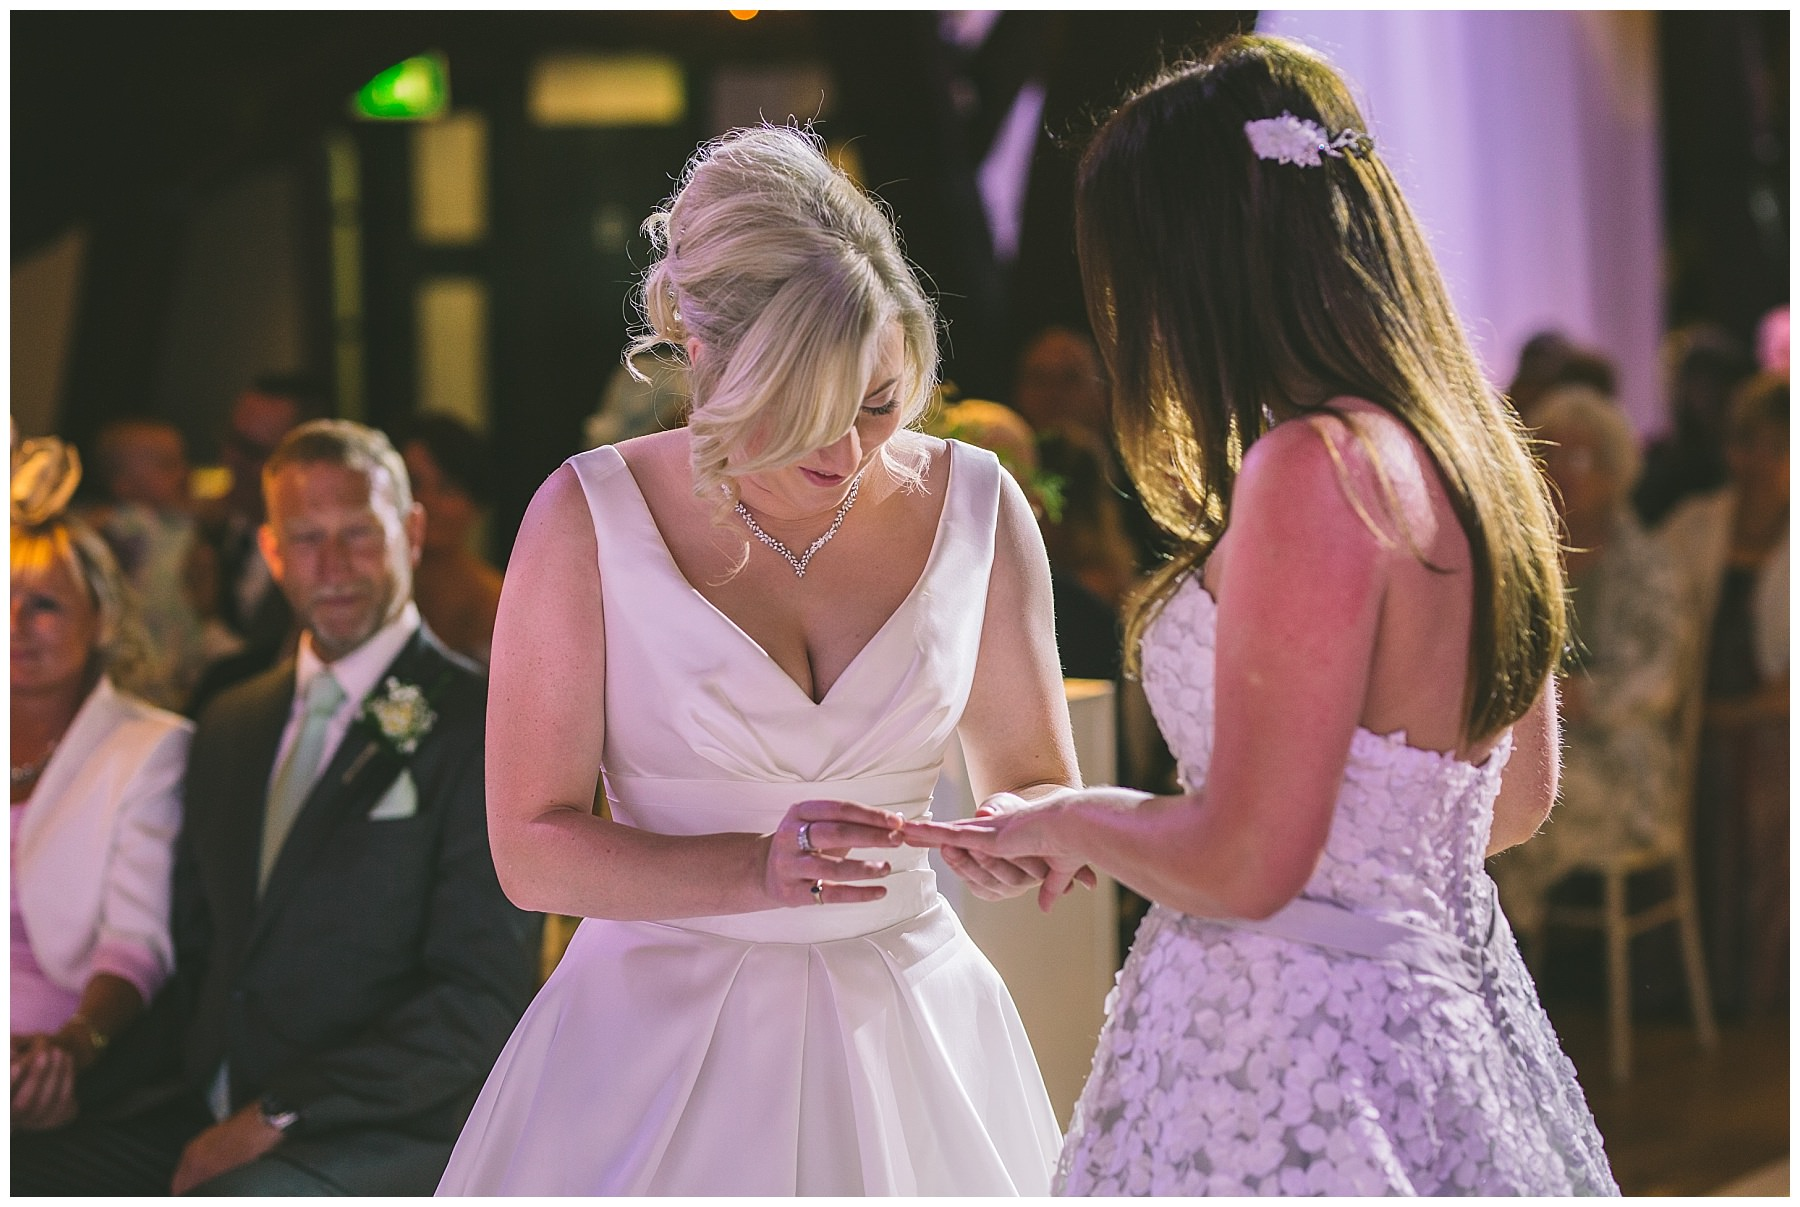 brides exchange wedding rings during Rivington Barn Wedding